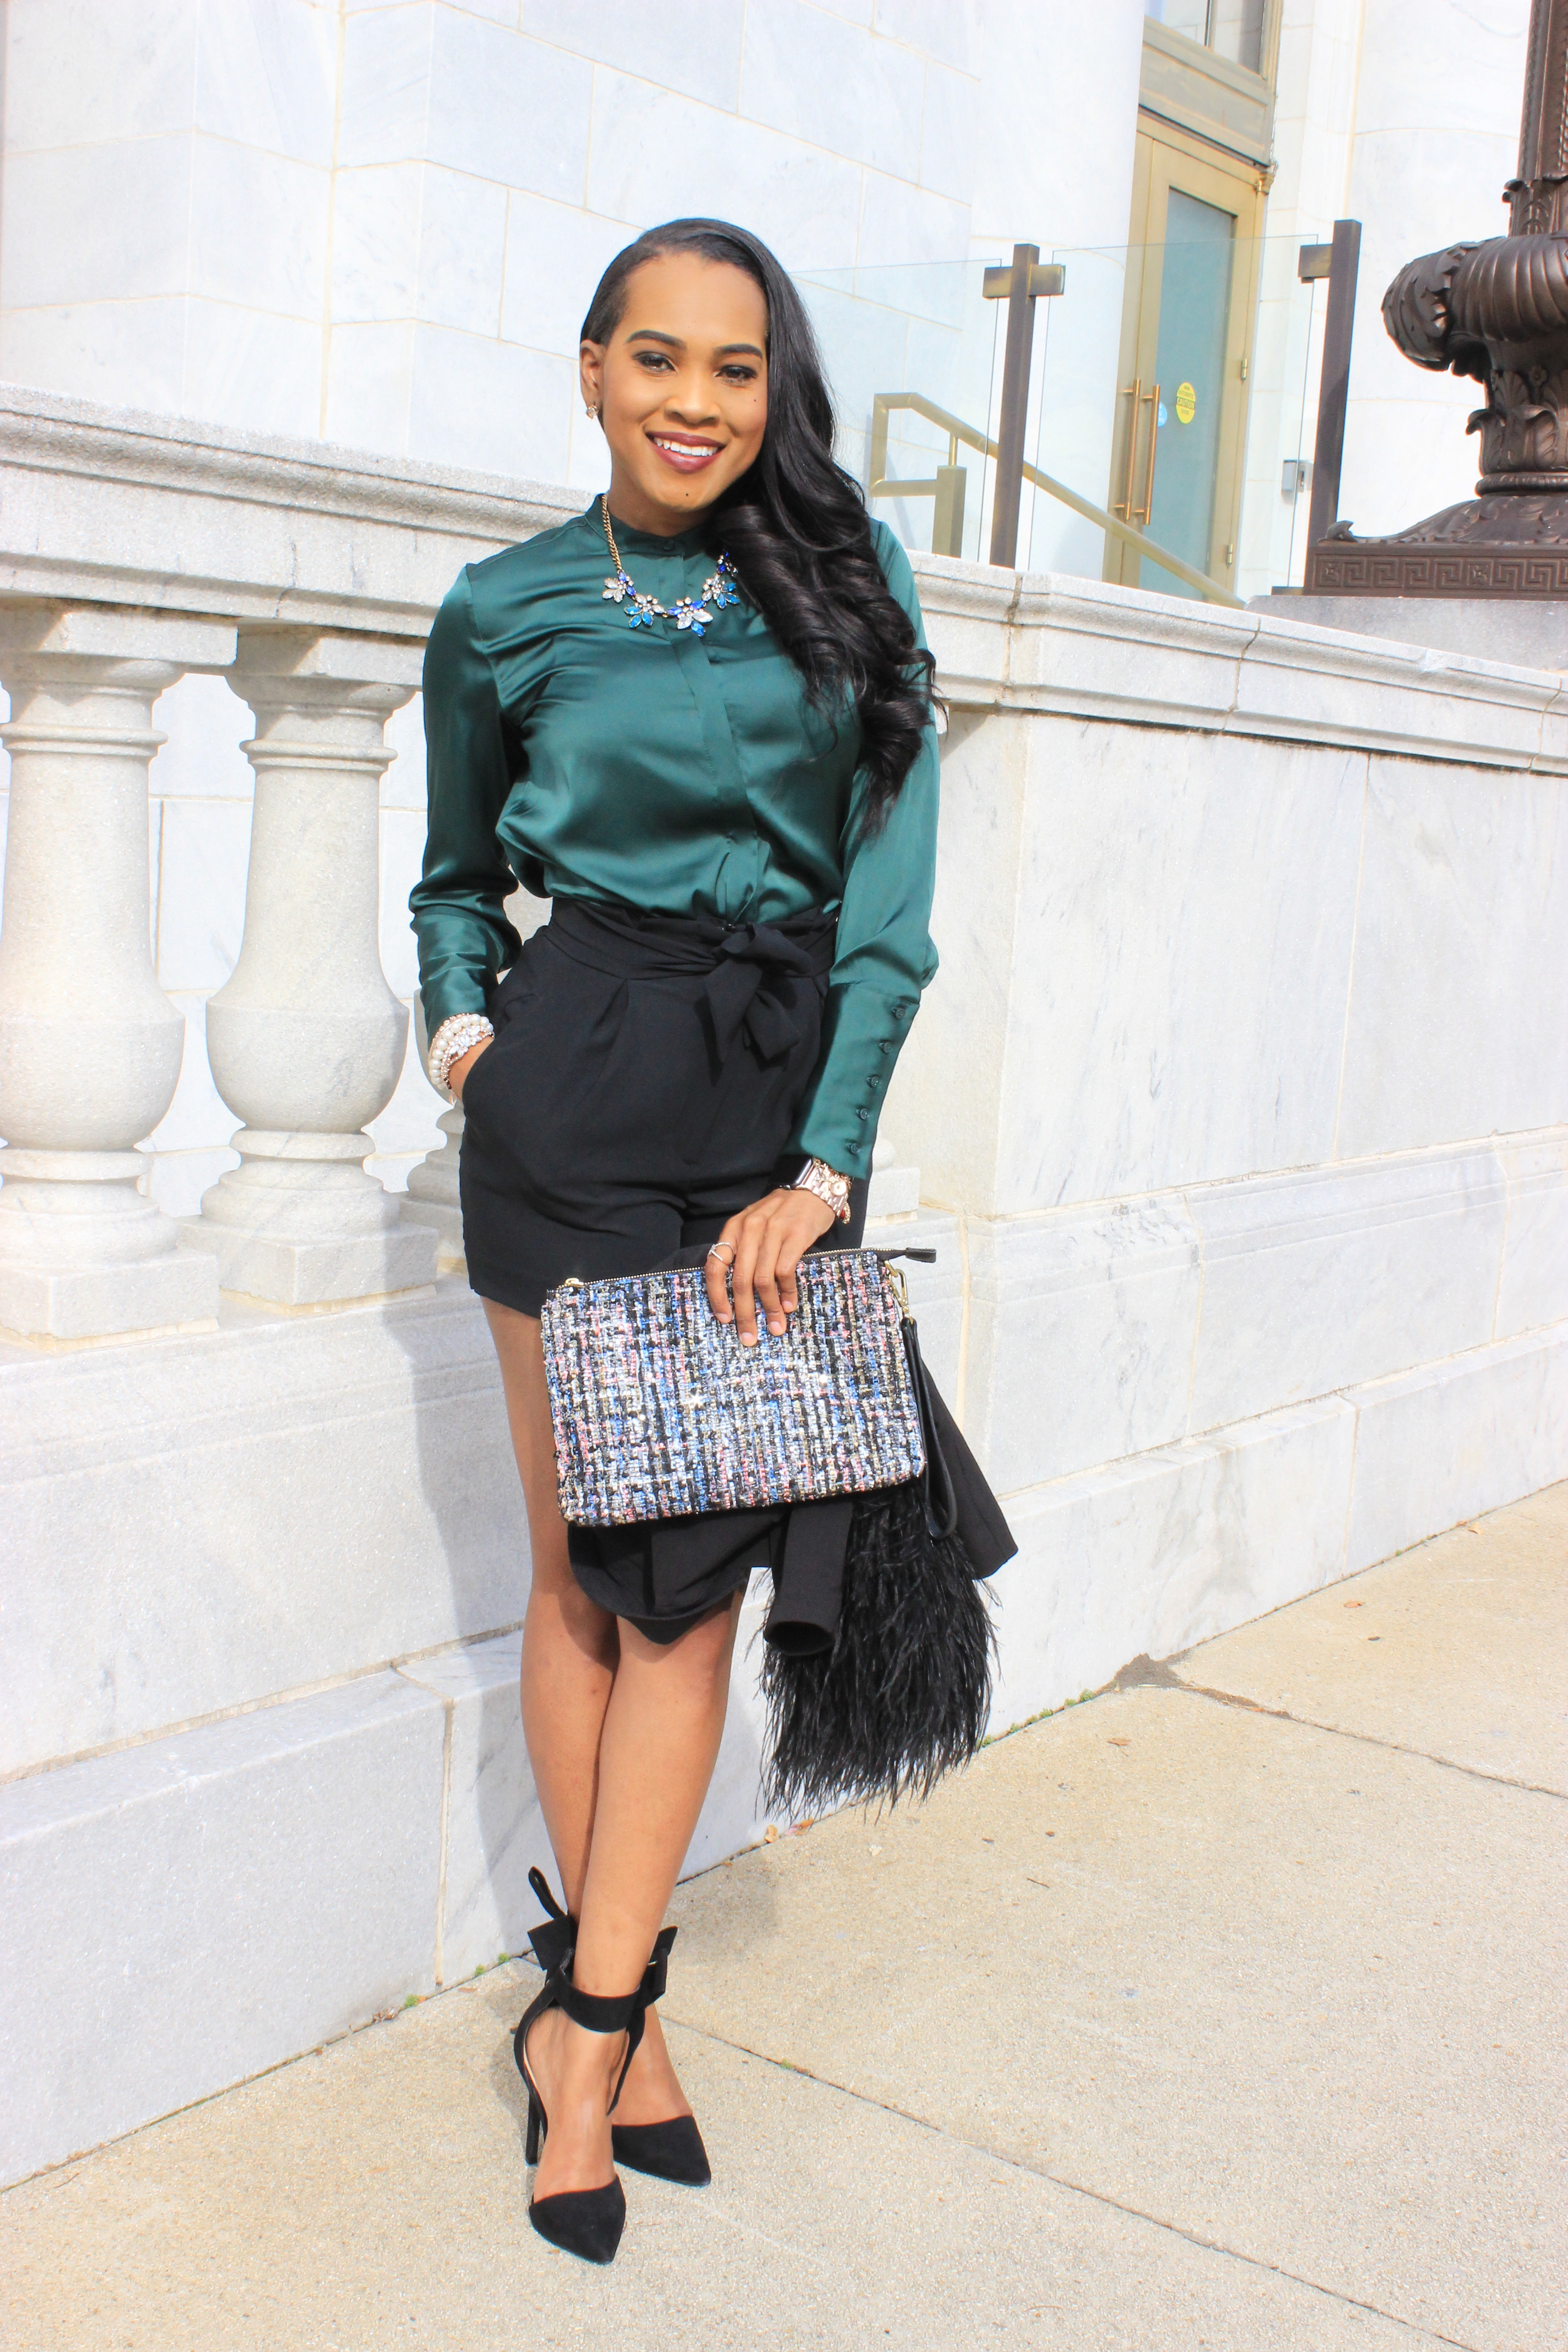 Style-Files-HM-Dark-Green-Satin-button-front-blouse-black-hm-tie-front-shorts-justfab-black-Giada-bow-heels- Gianni-Bini-Lizzy-Notch-Lapel-Collar- with-feather-hem-christmas-style-inspiration-what-to-wear-duirng-the-holidays-oohlalablog-4